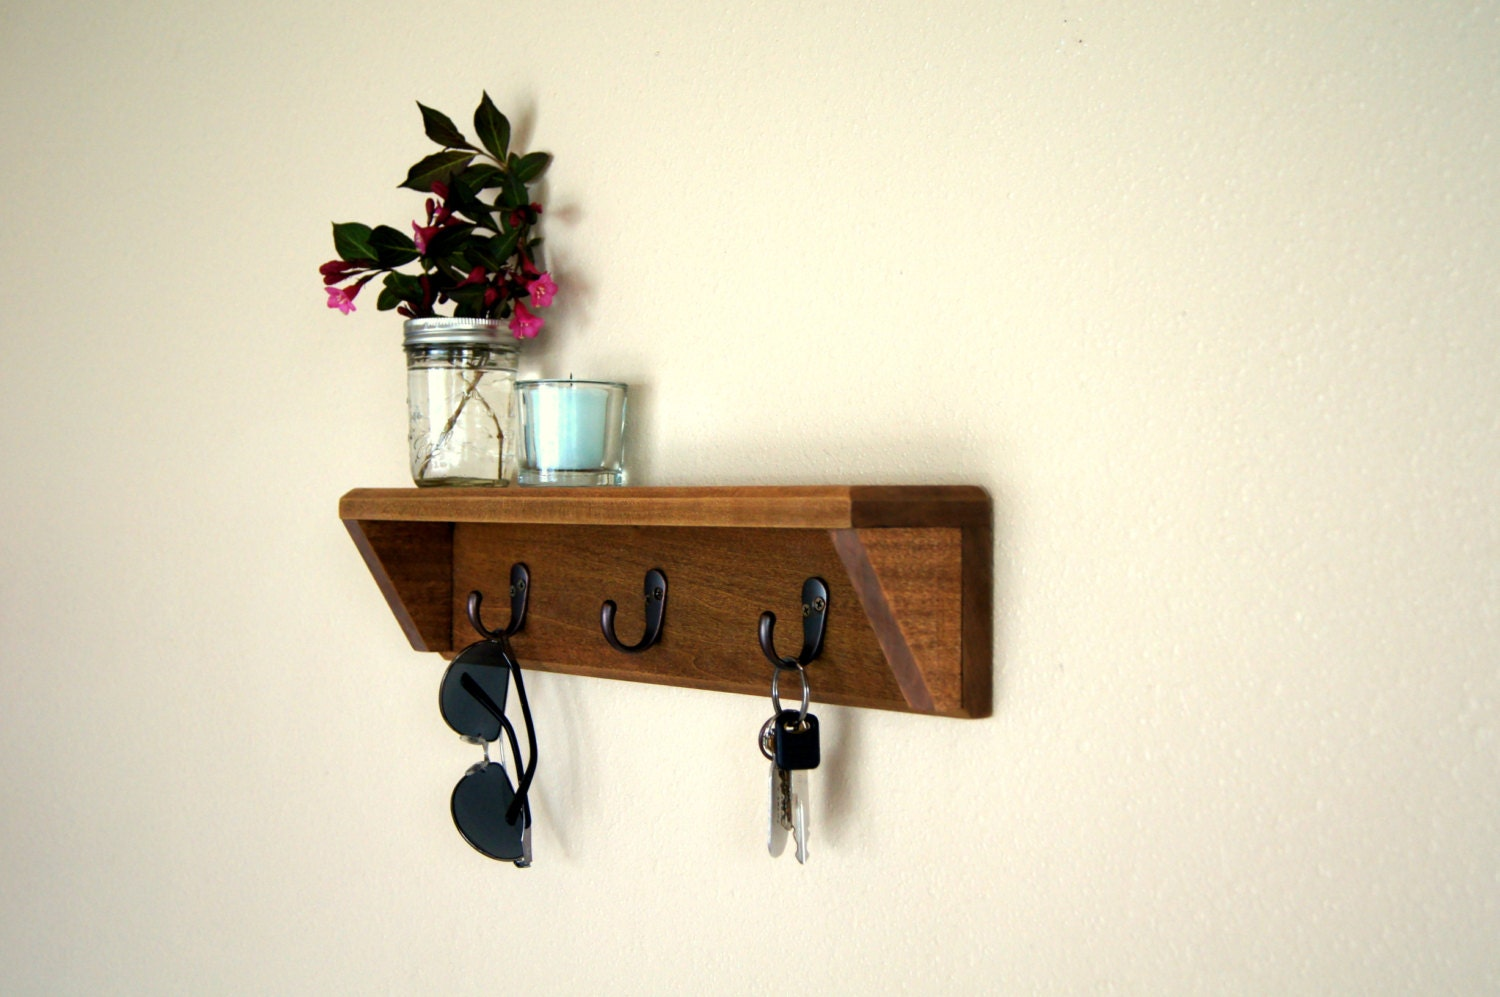 wood entryway organizer shelf with hooks by midnightwoodworks